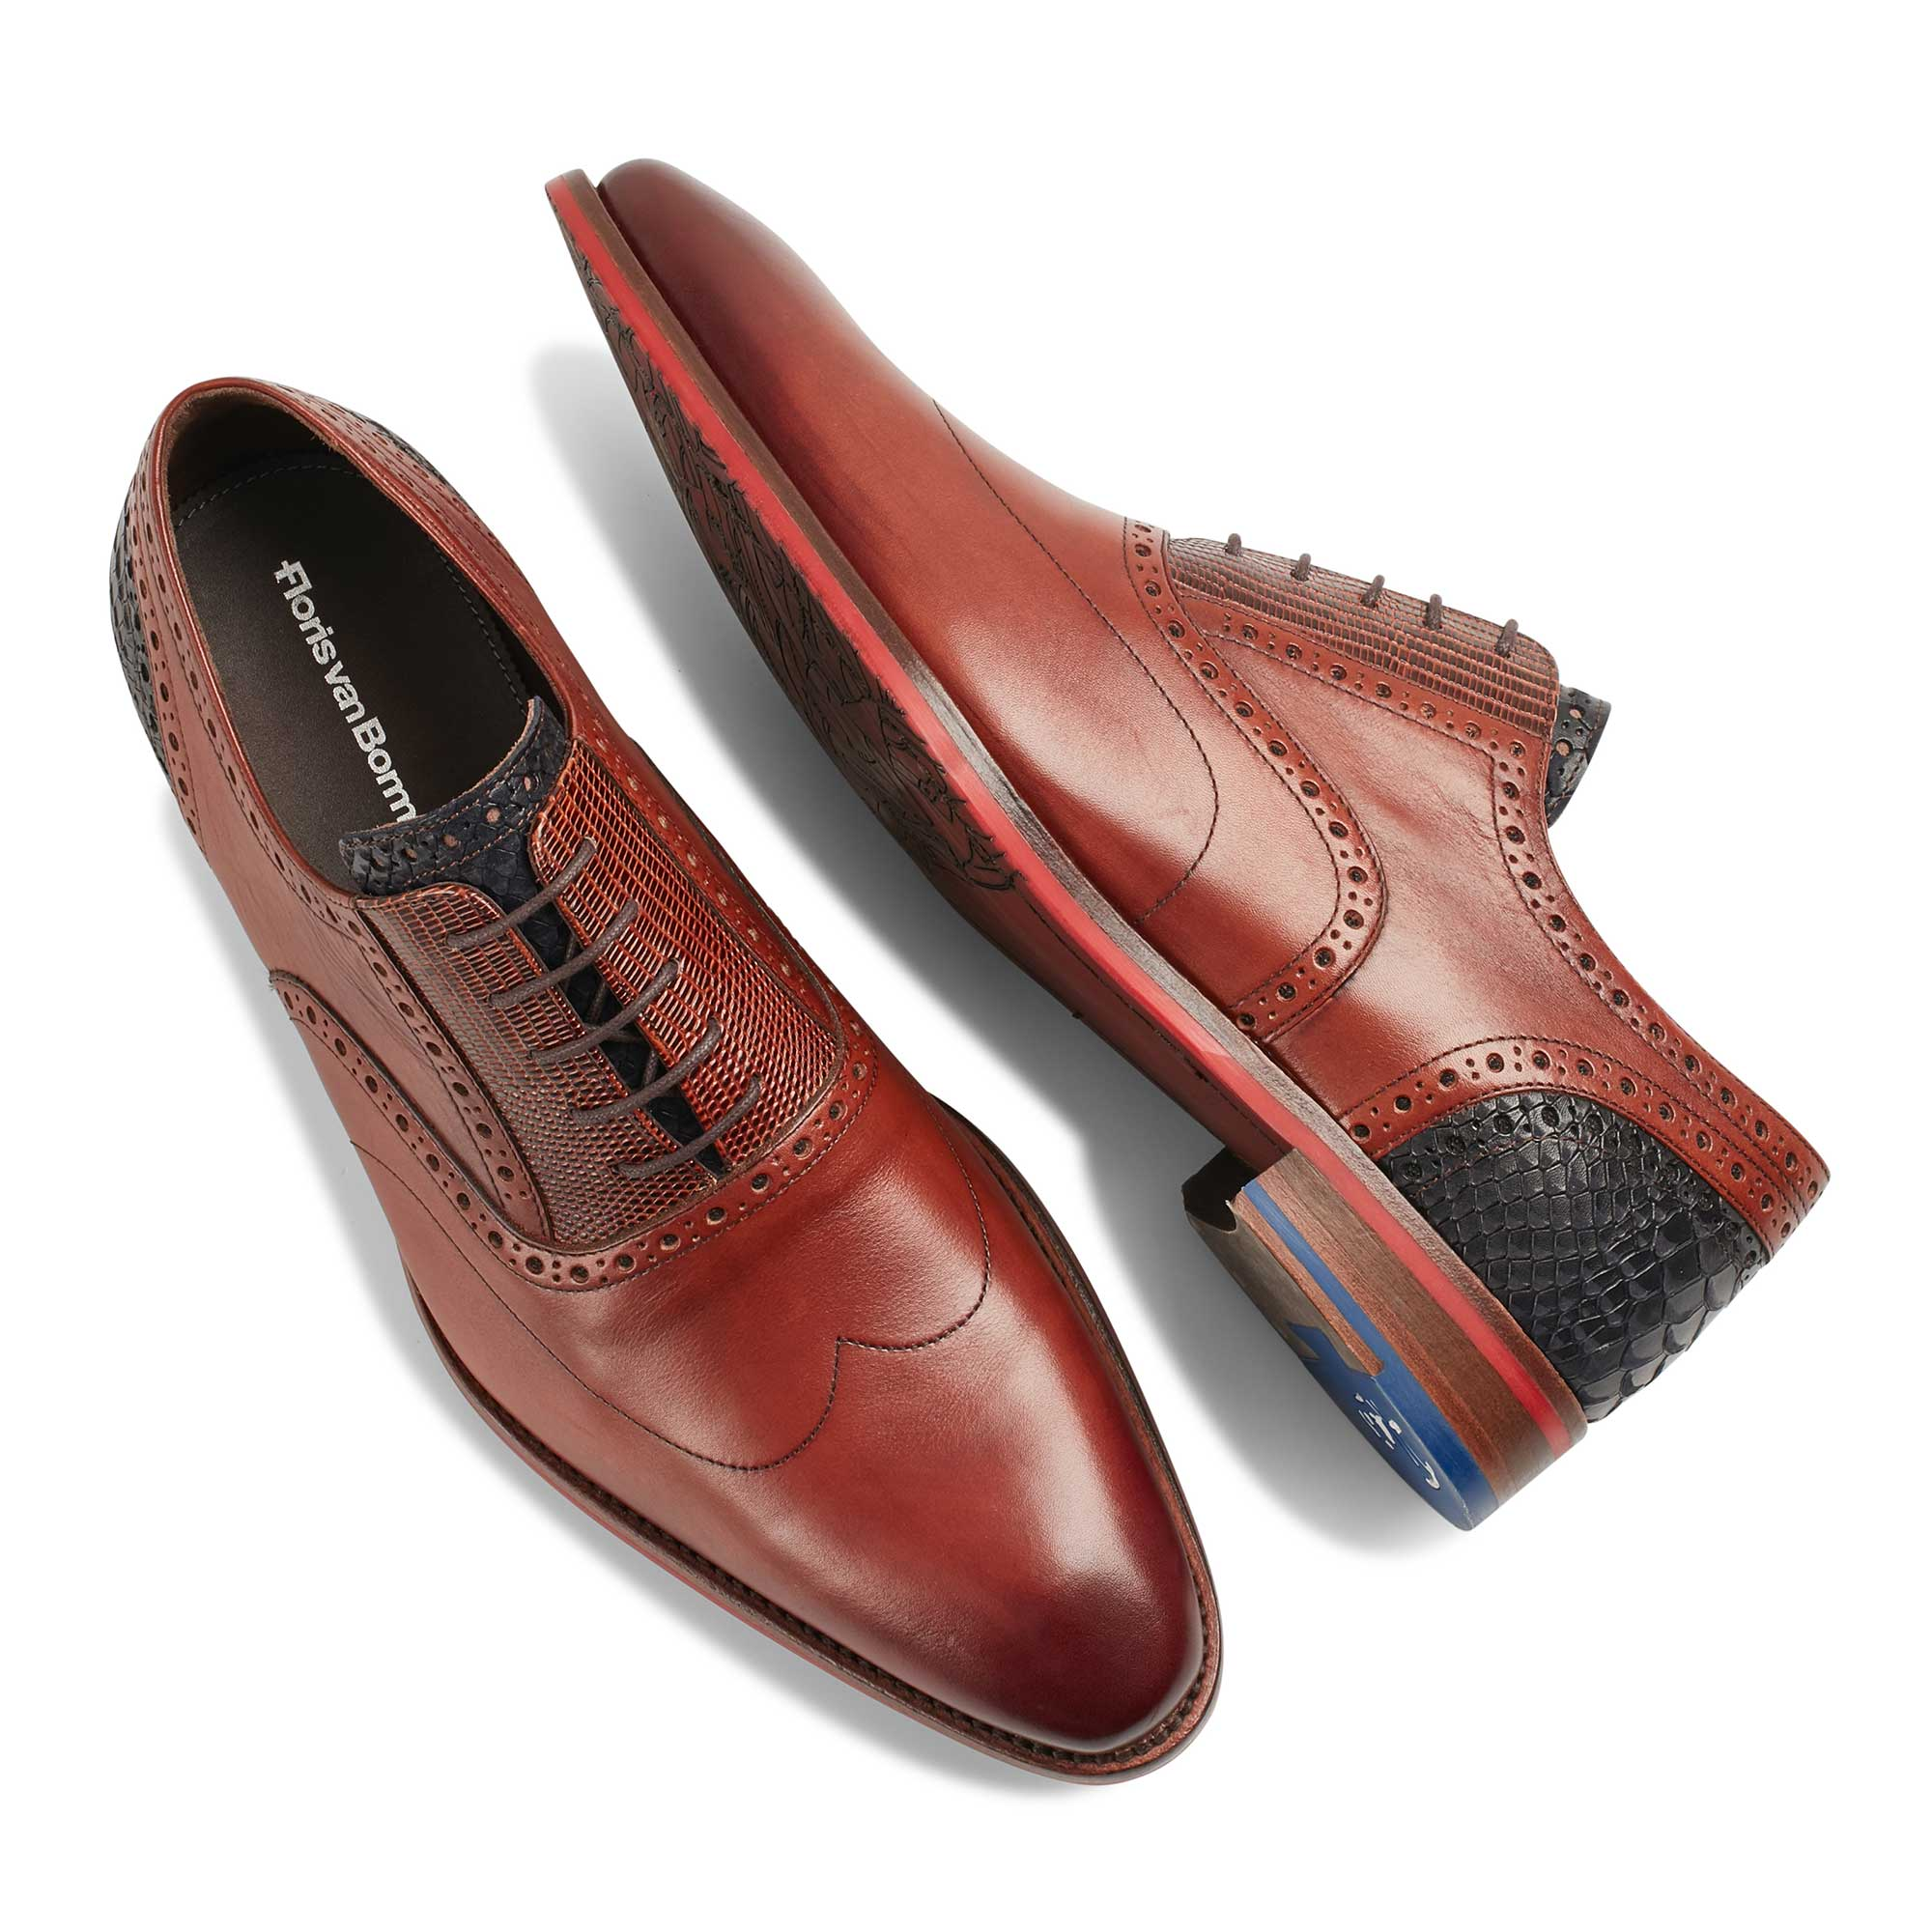 19062/00 - Cognac-coloured calf's leather lace shoe